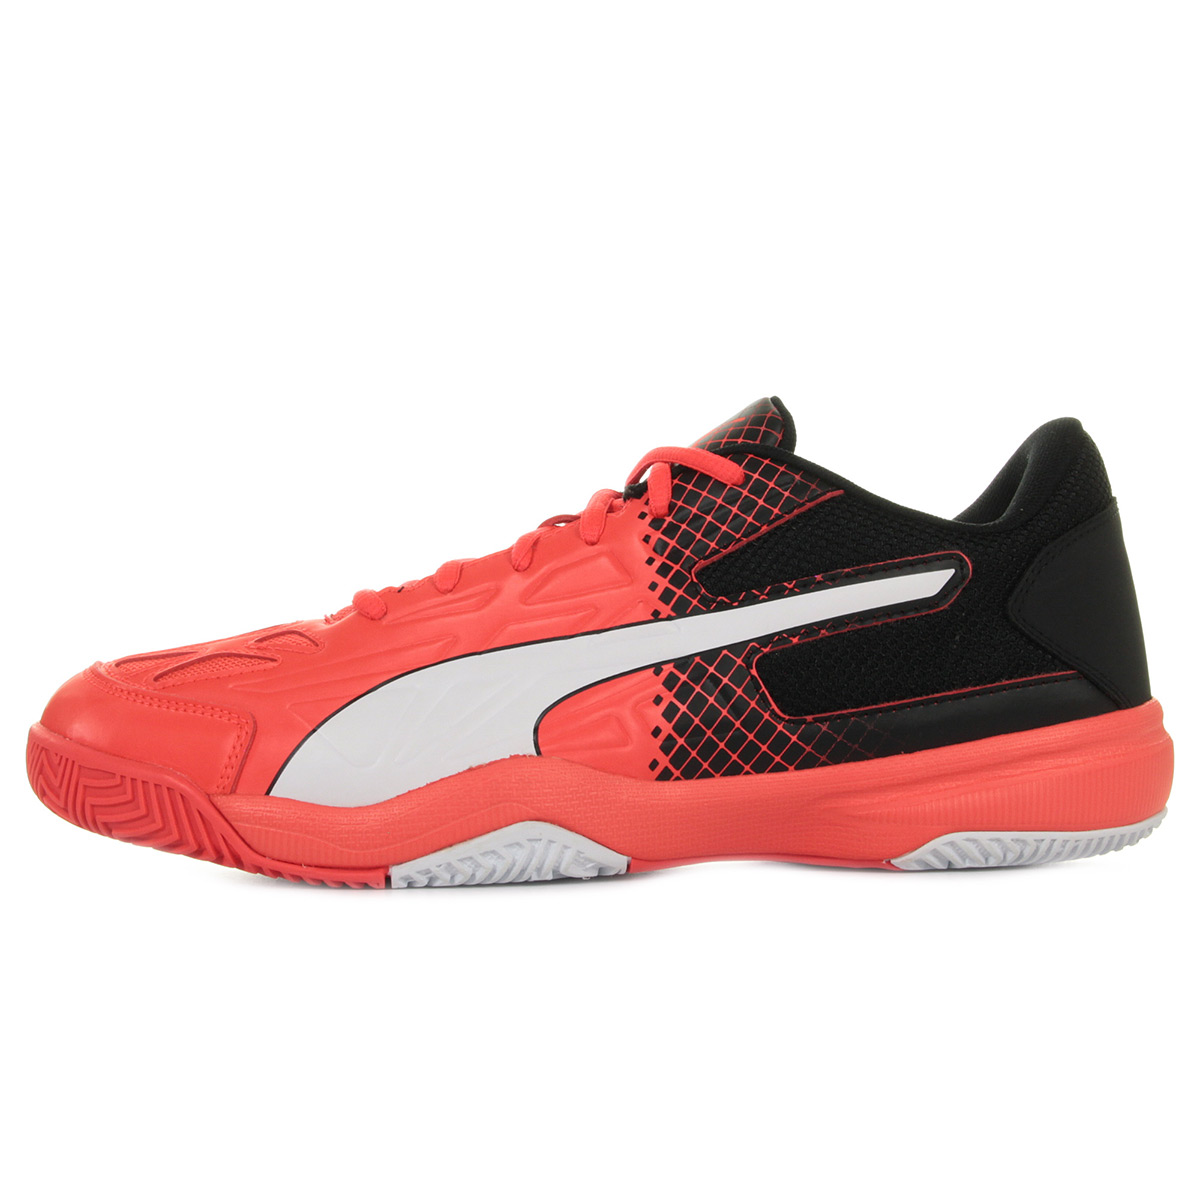 Puma evoSPEED Indoor 5.5 10366801, Handball homme